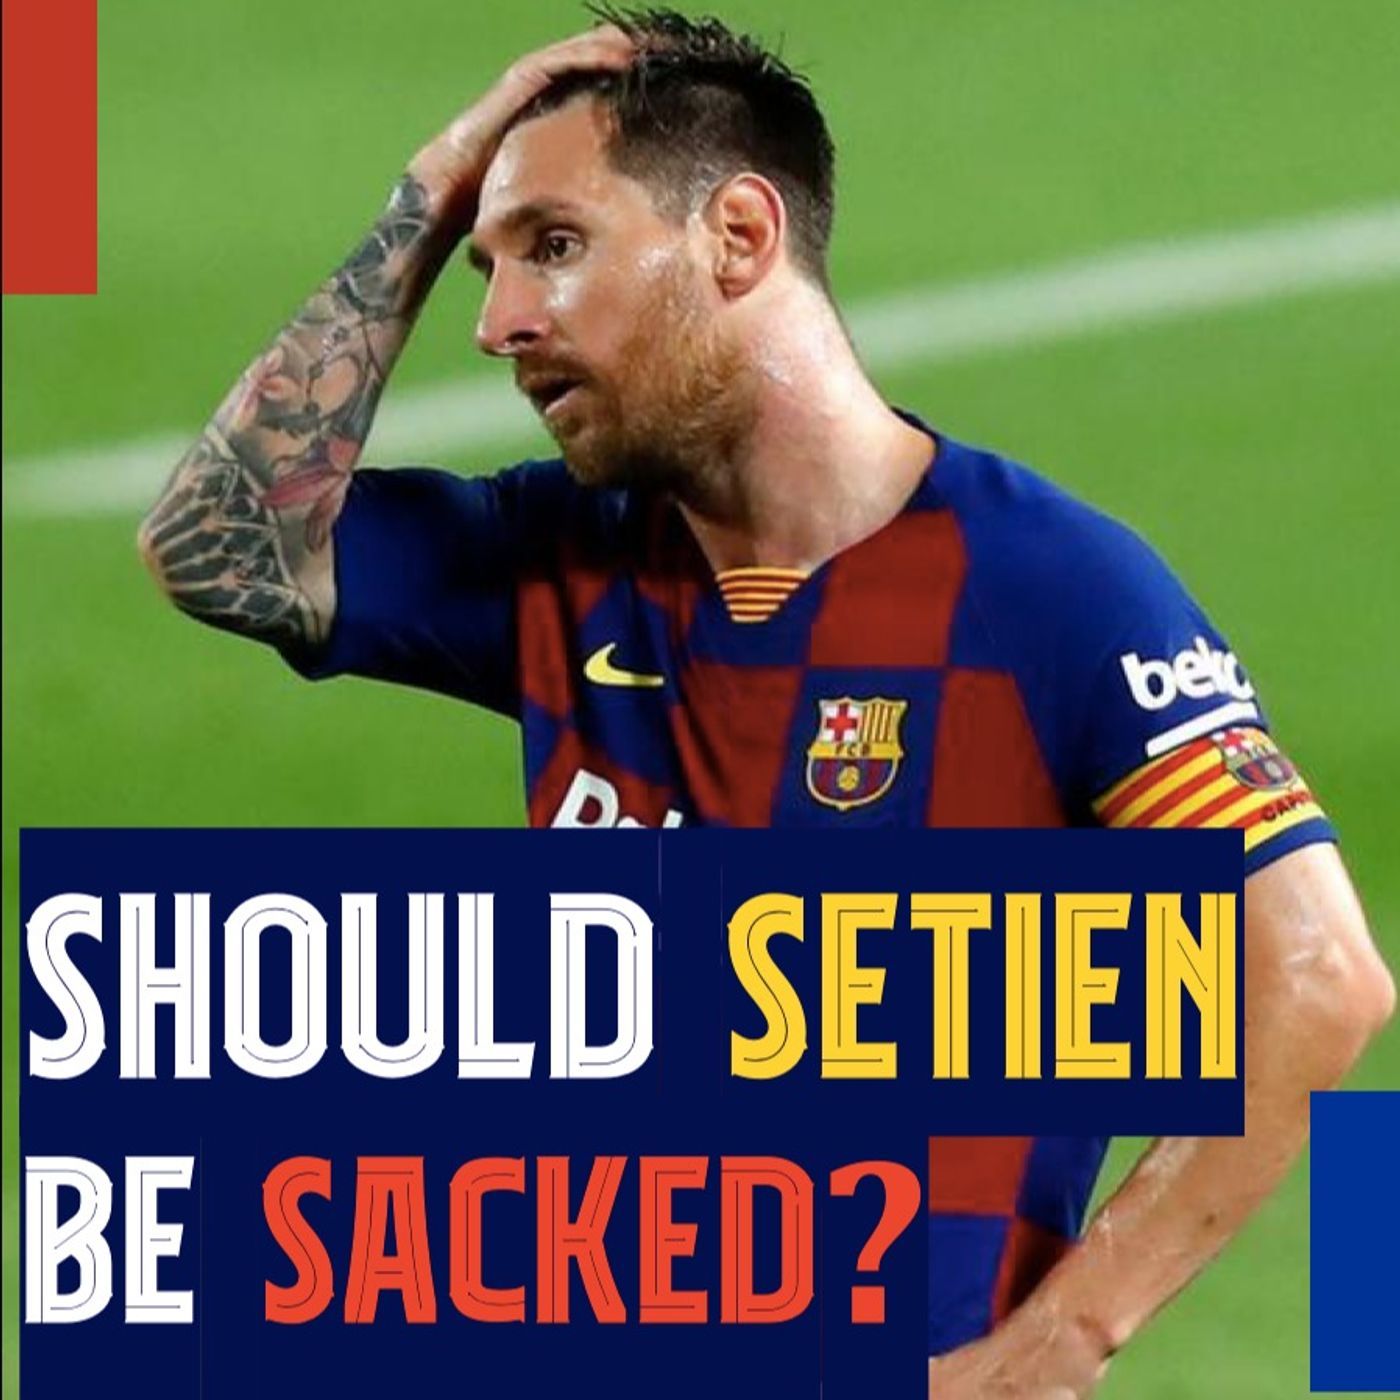 Would sacking Setién help Barcelona win the Champions League? La Masia powering through, and replacing Suárez